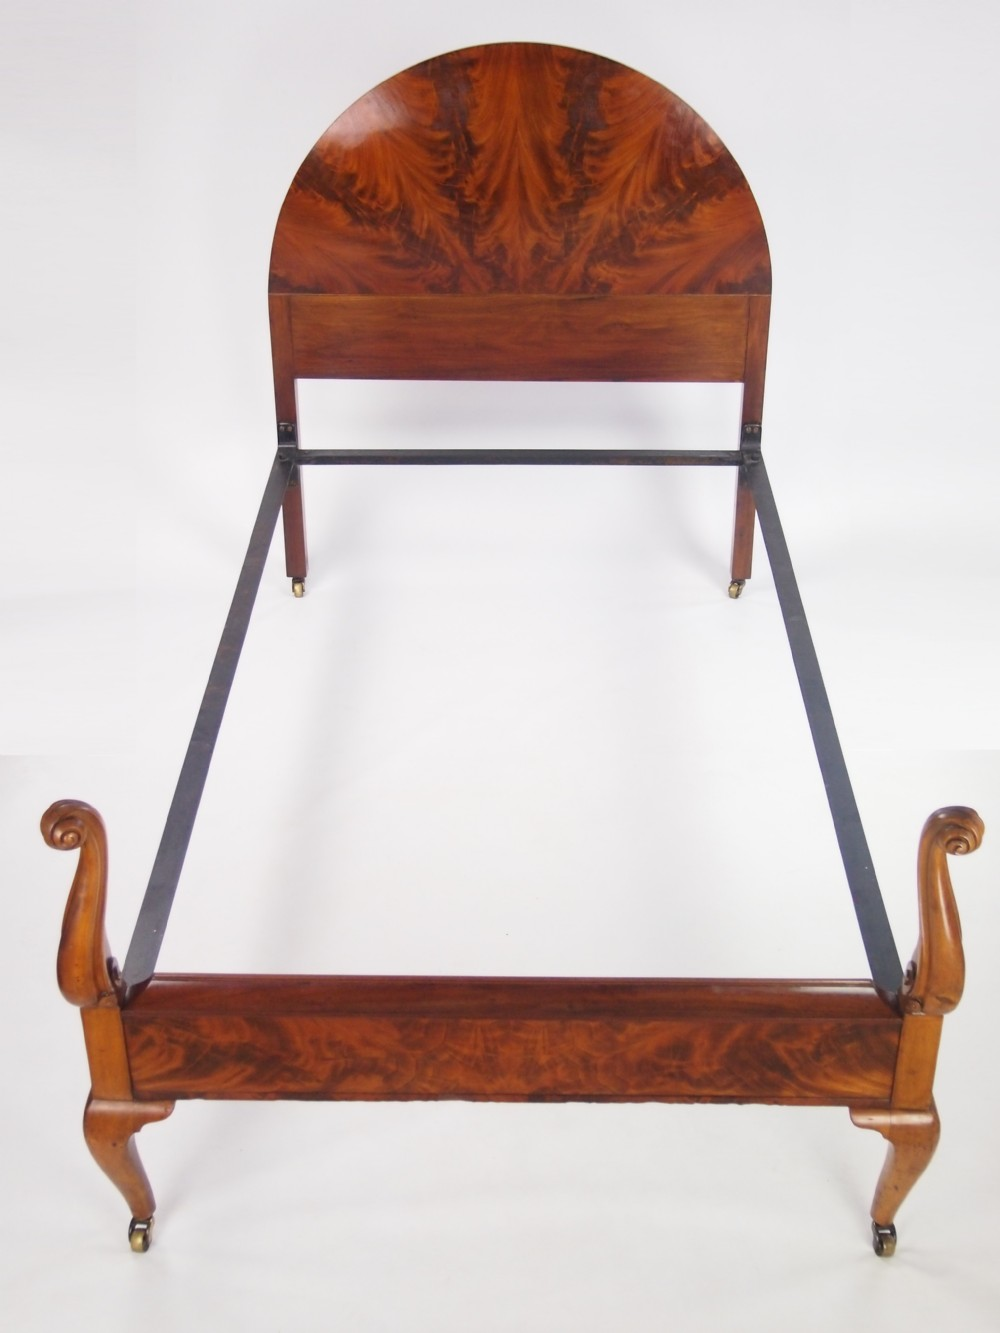 Queen anne style mahogany large single bed 3ft6 x 6ft3 for Queen anne style bed